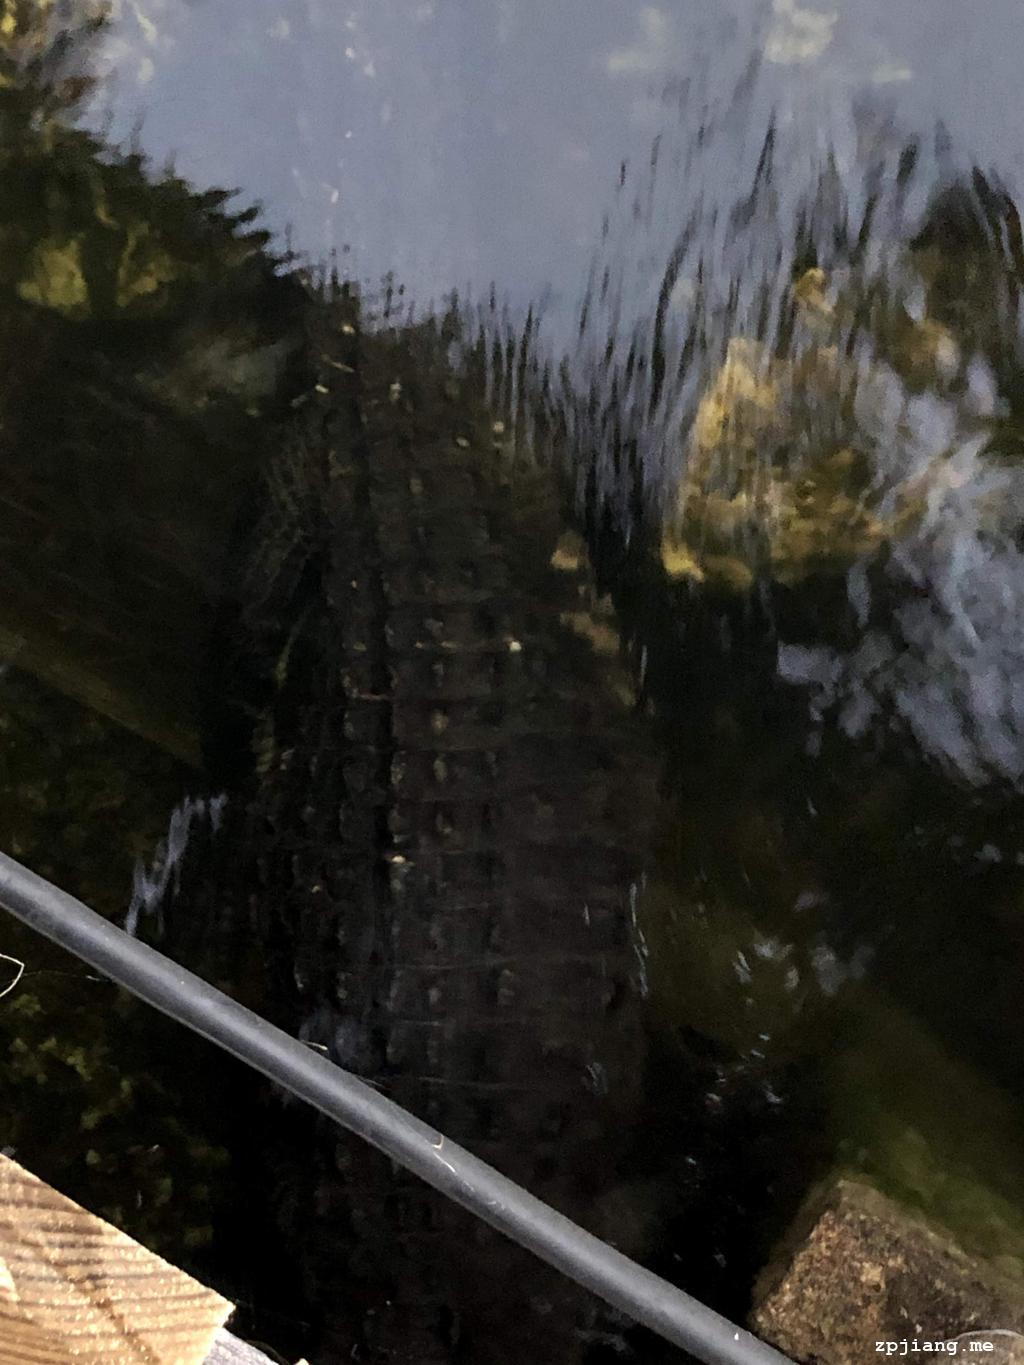 Alligator hidden under bridge